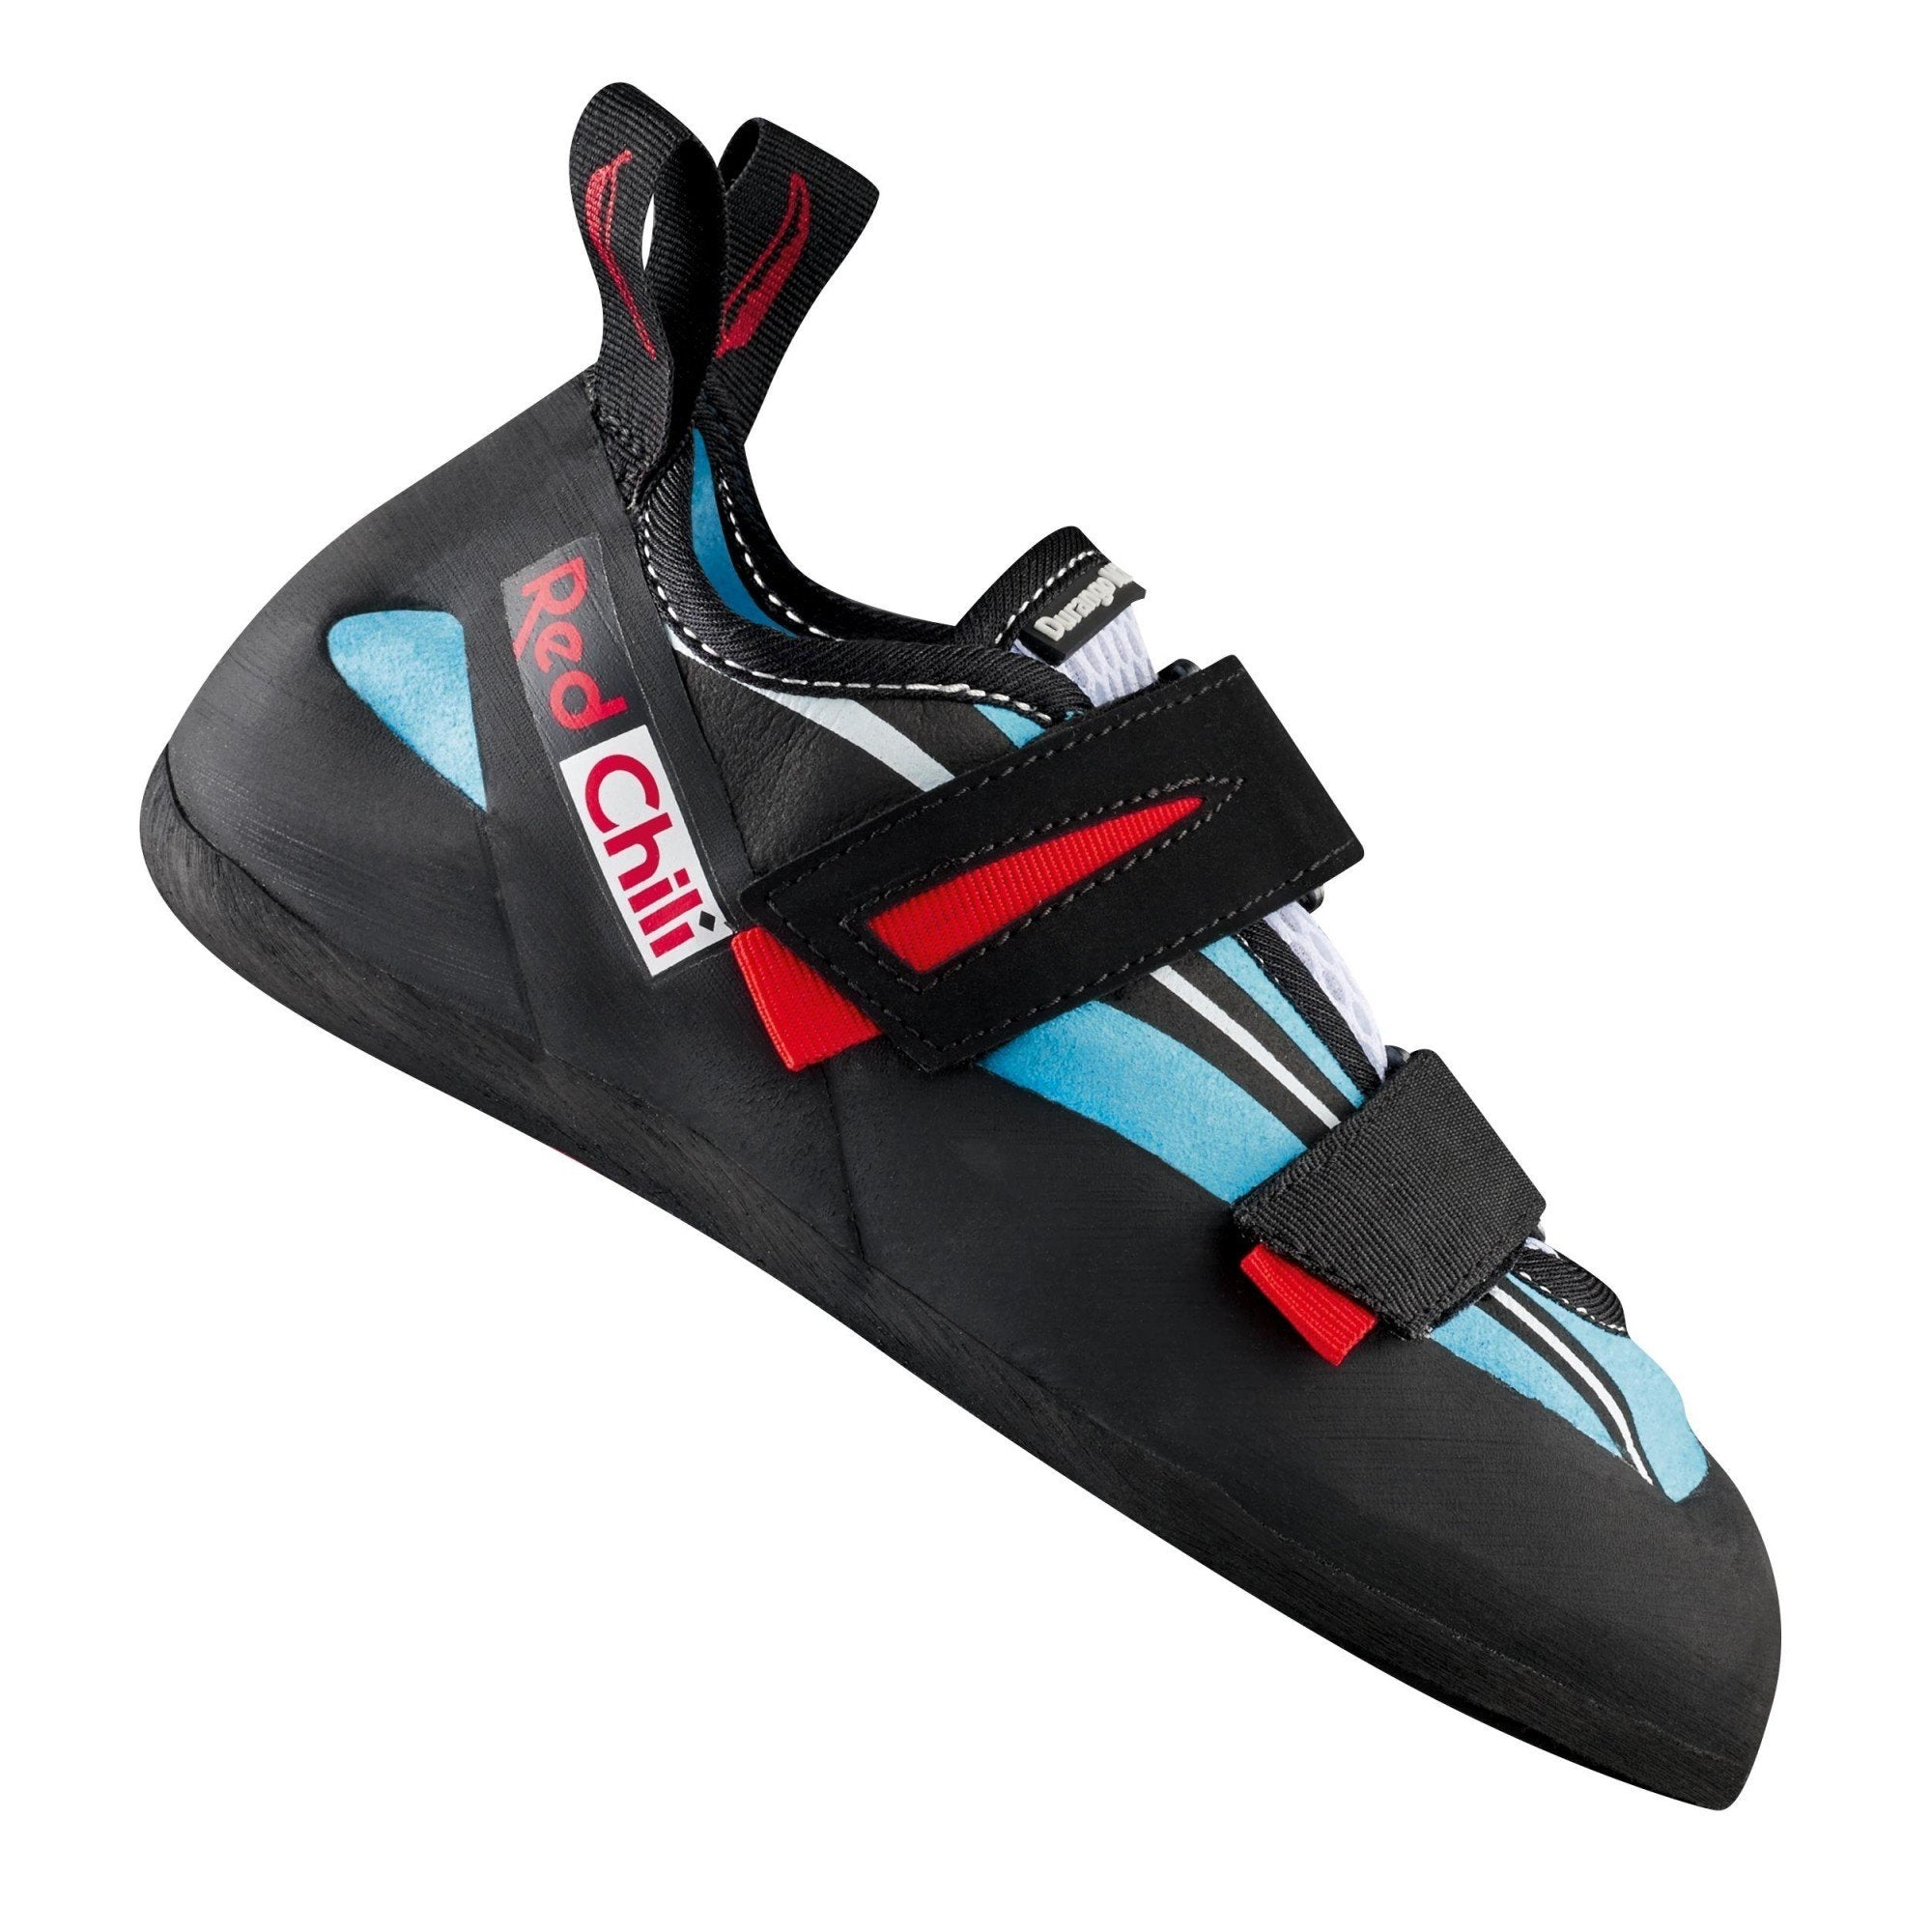 Red Chili Durango VCR climbing shoe, in black, blue and red colours